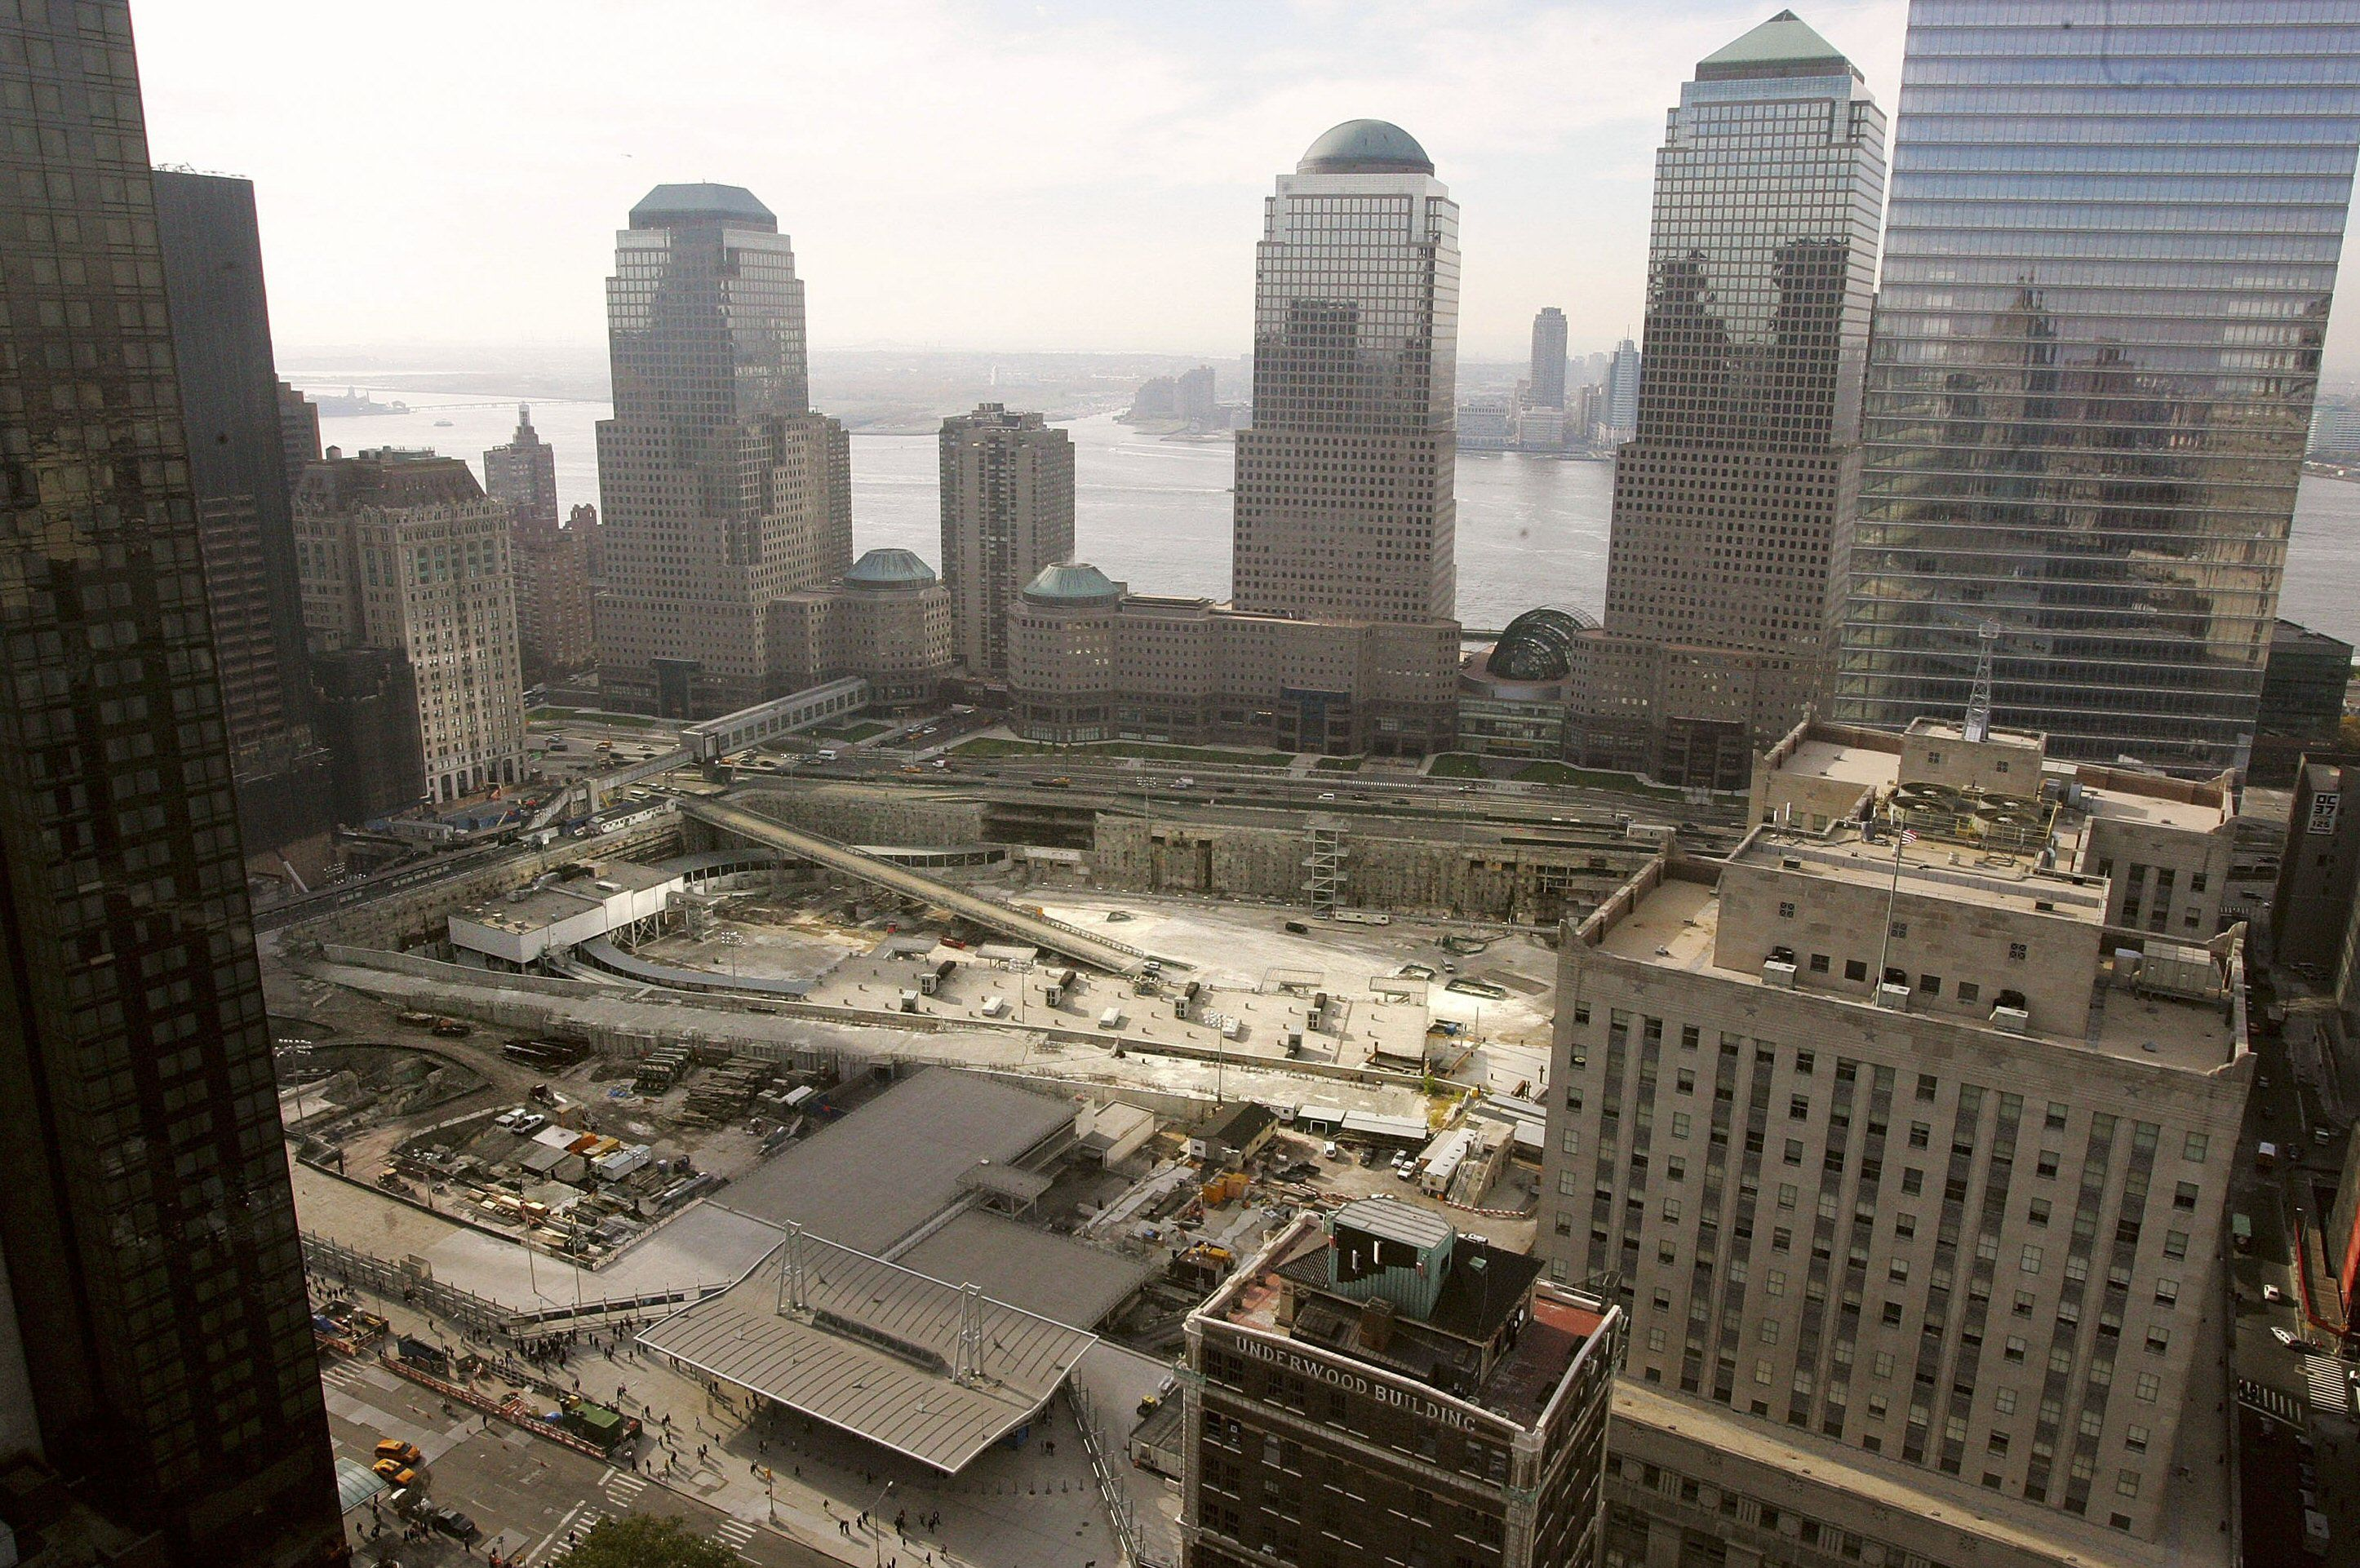 barren construction site with skyscrapers and the Hudson River in the background